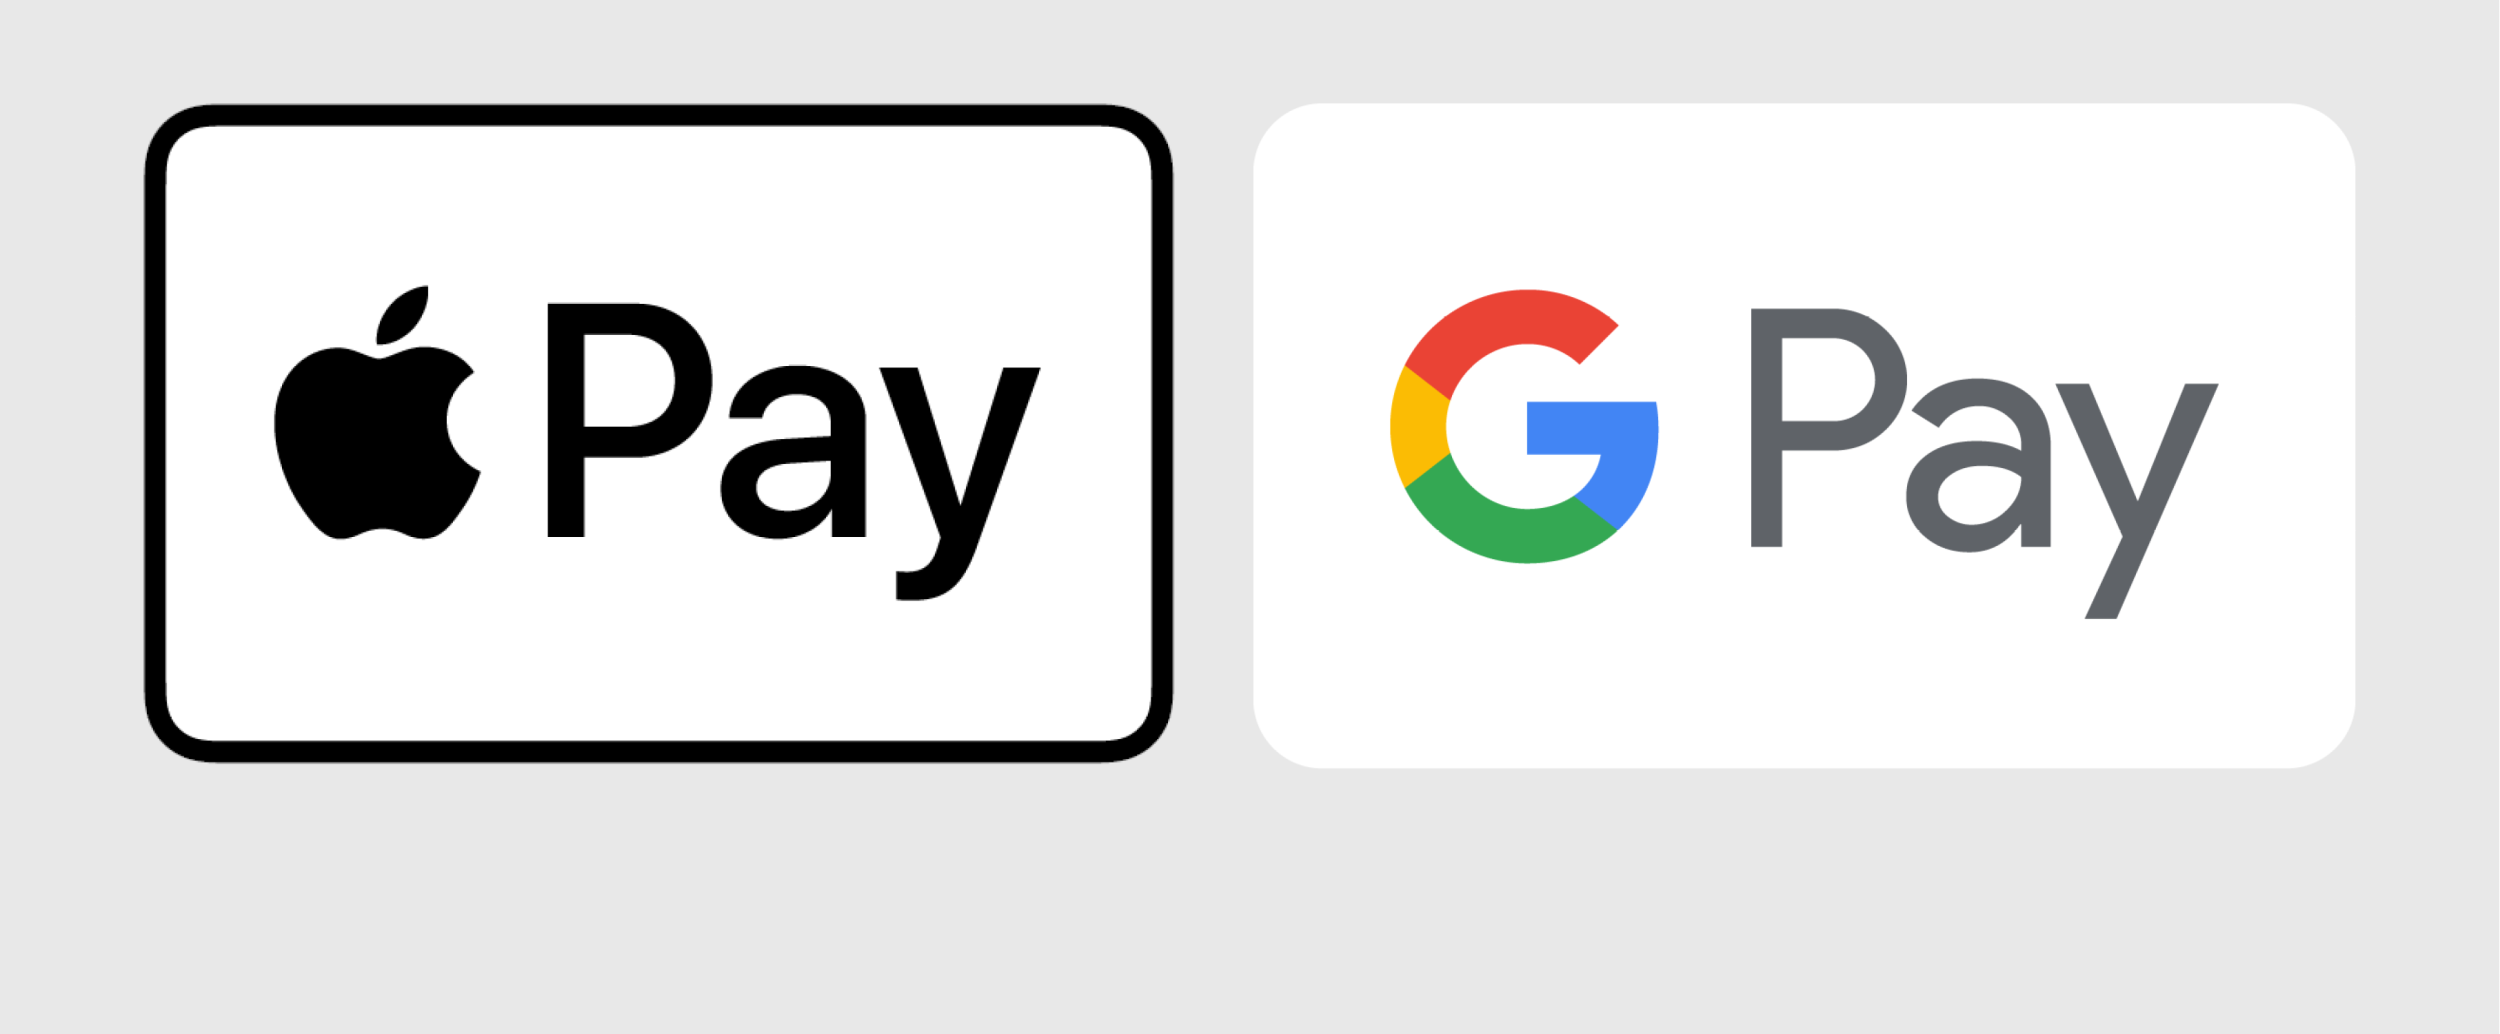 Принимаем Google Pay / Apple Pay